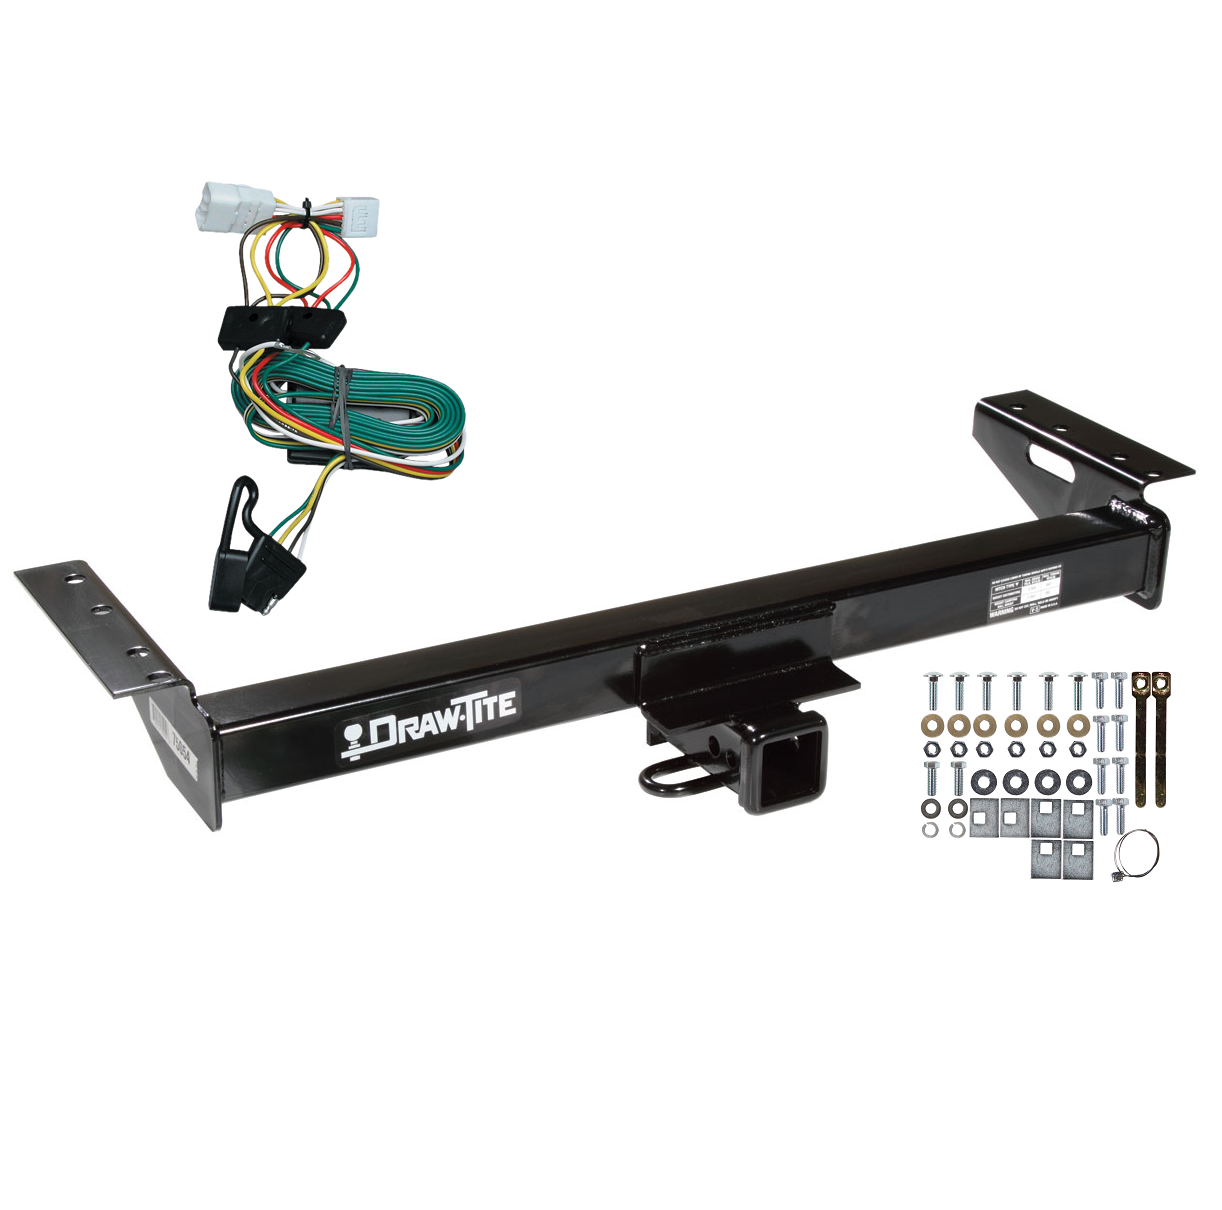 trailer tow hitch for 97 01 jeep cherokee w wiring. Black Bedroom Furniture Sets. Home Design Ideas